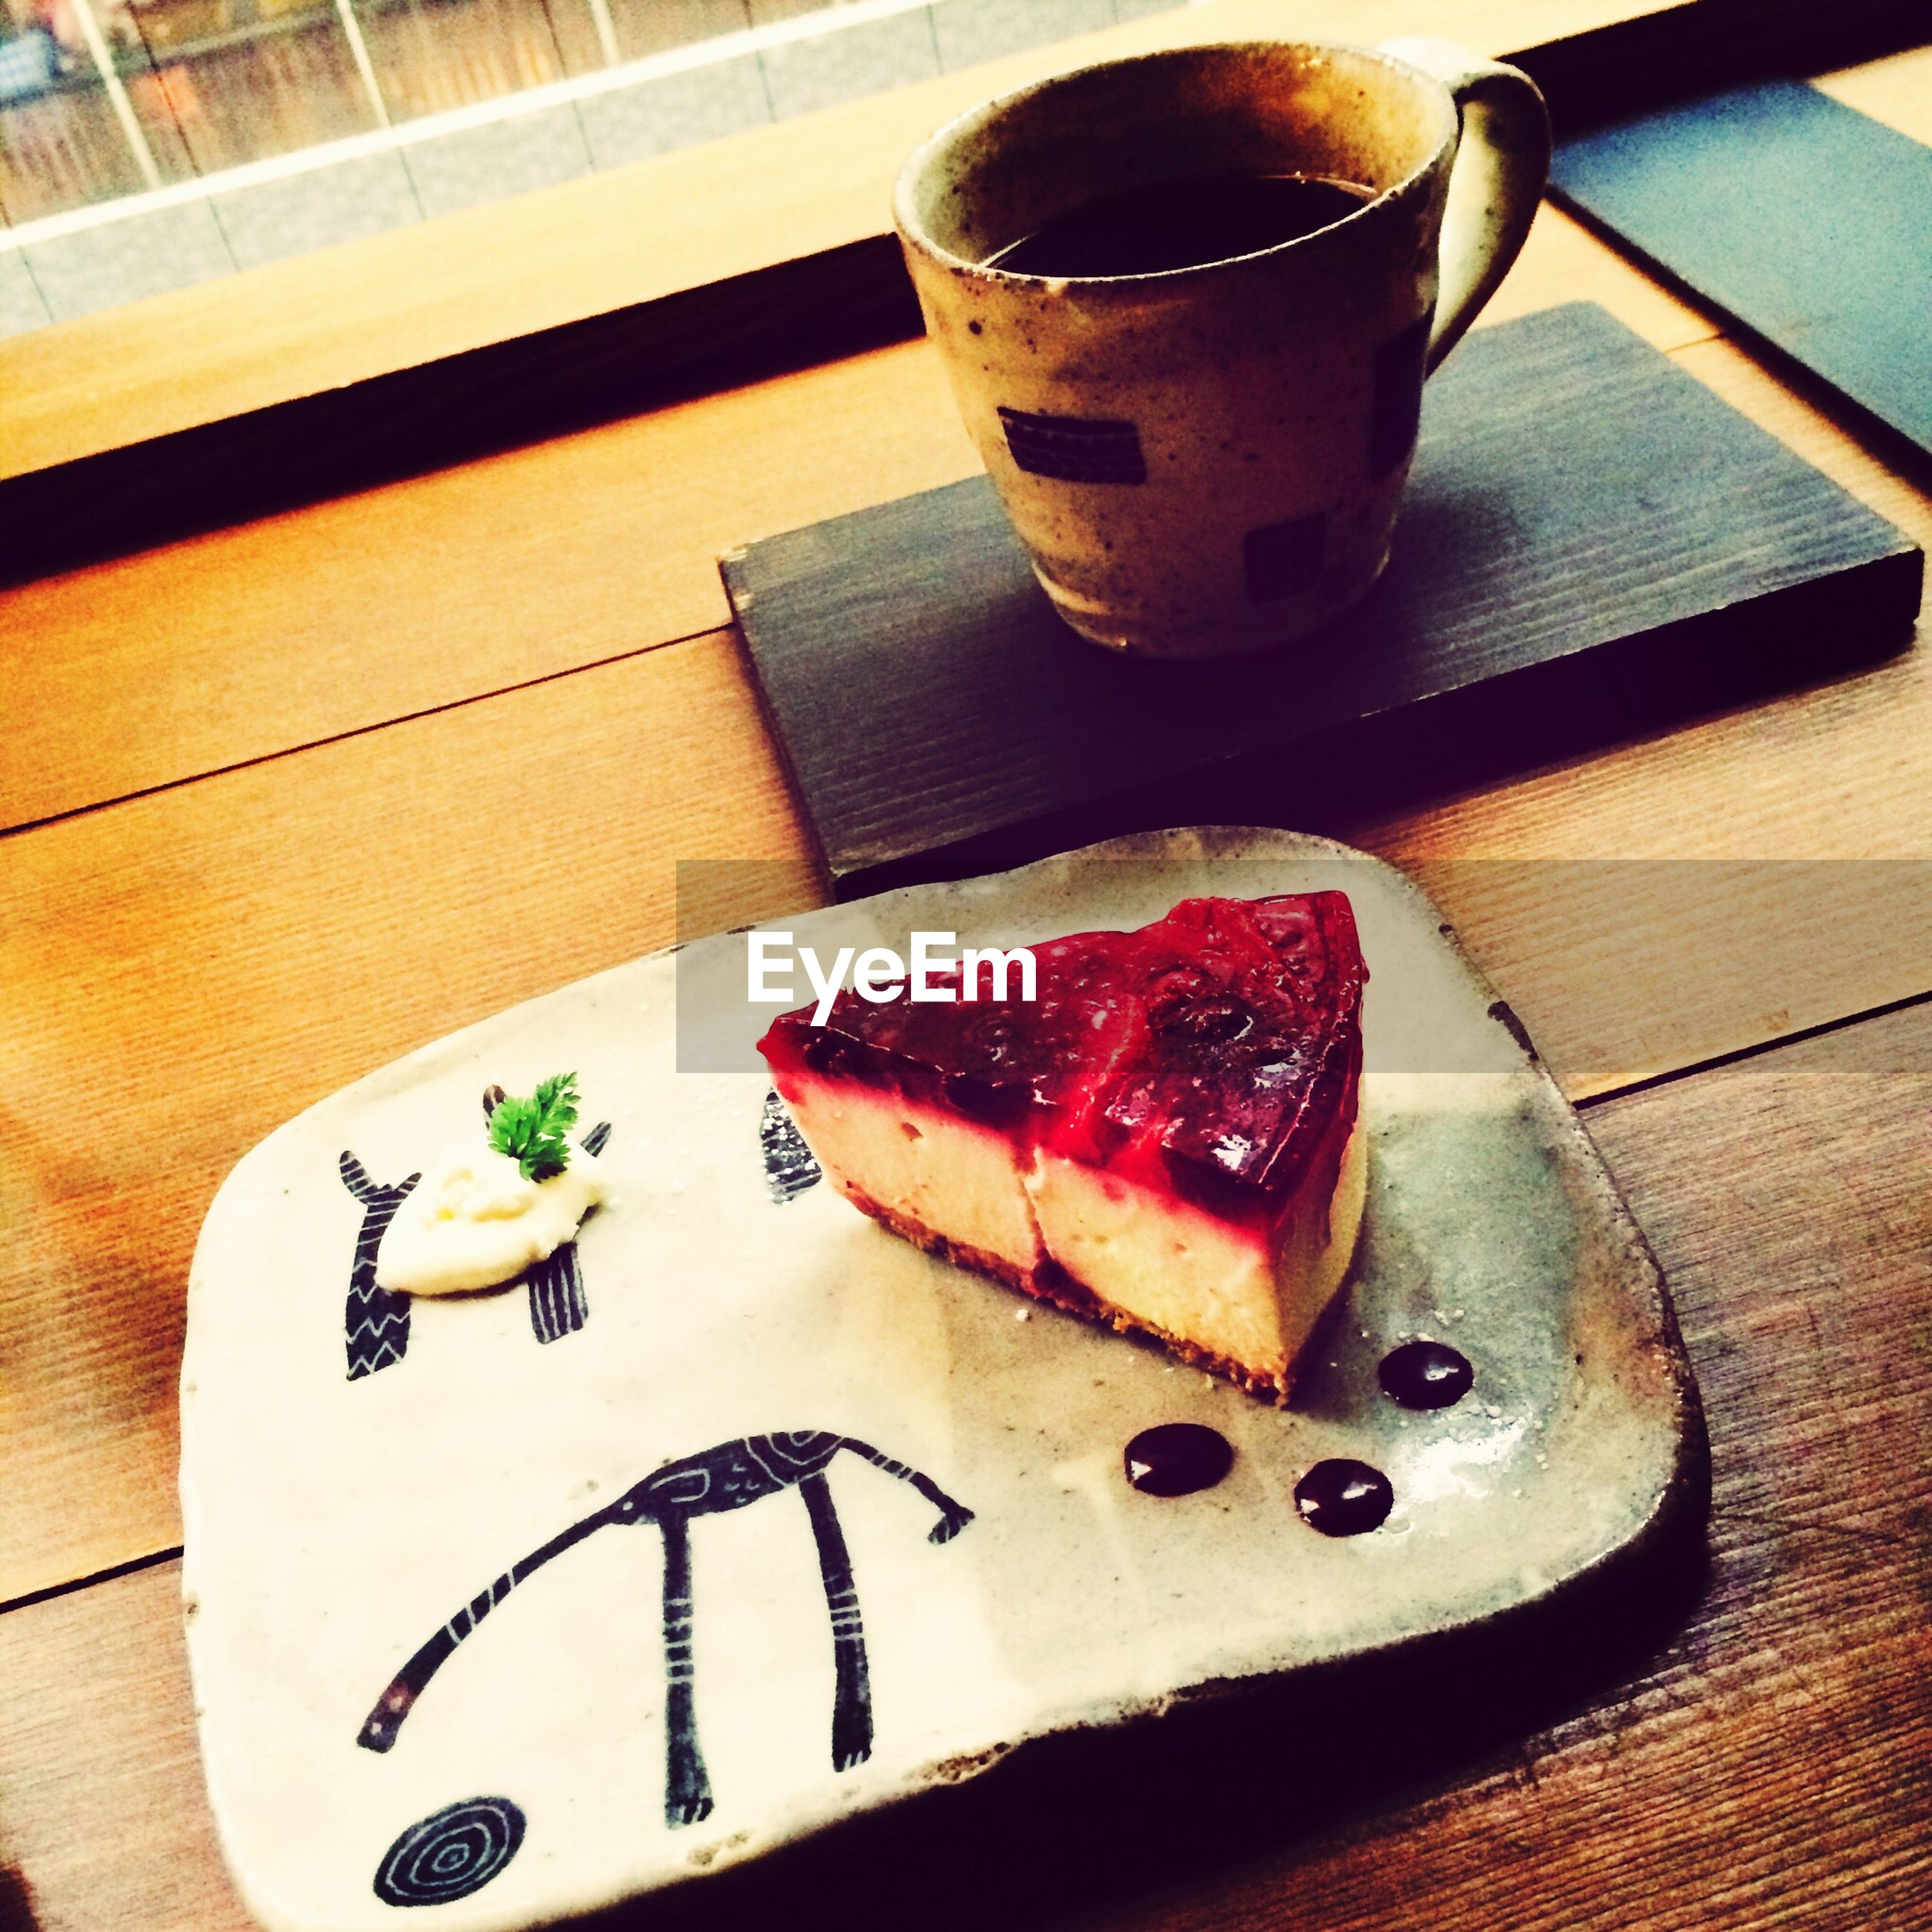 food and drink, food, freshness, indoors, table, ready-to-eat, sweet food, still life, drink, plate, indulgence, dessert, unhealthy eating, serving size, refreshment, strawberry, high angle view, fruit, cake